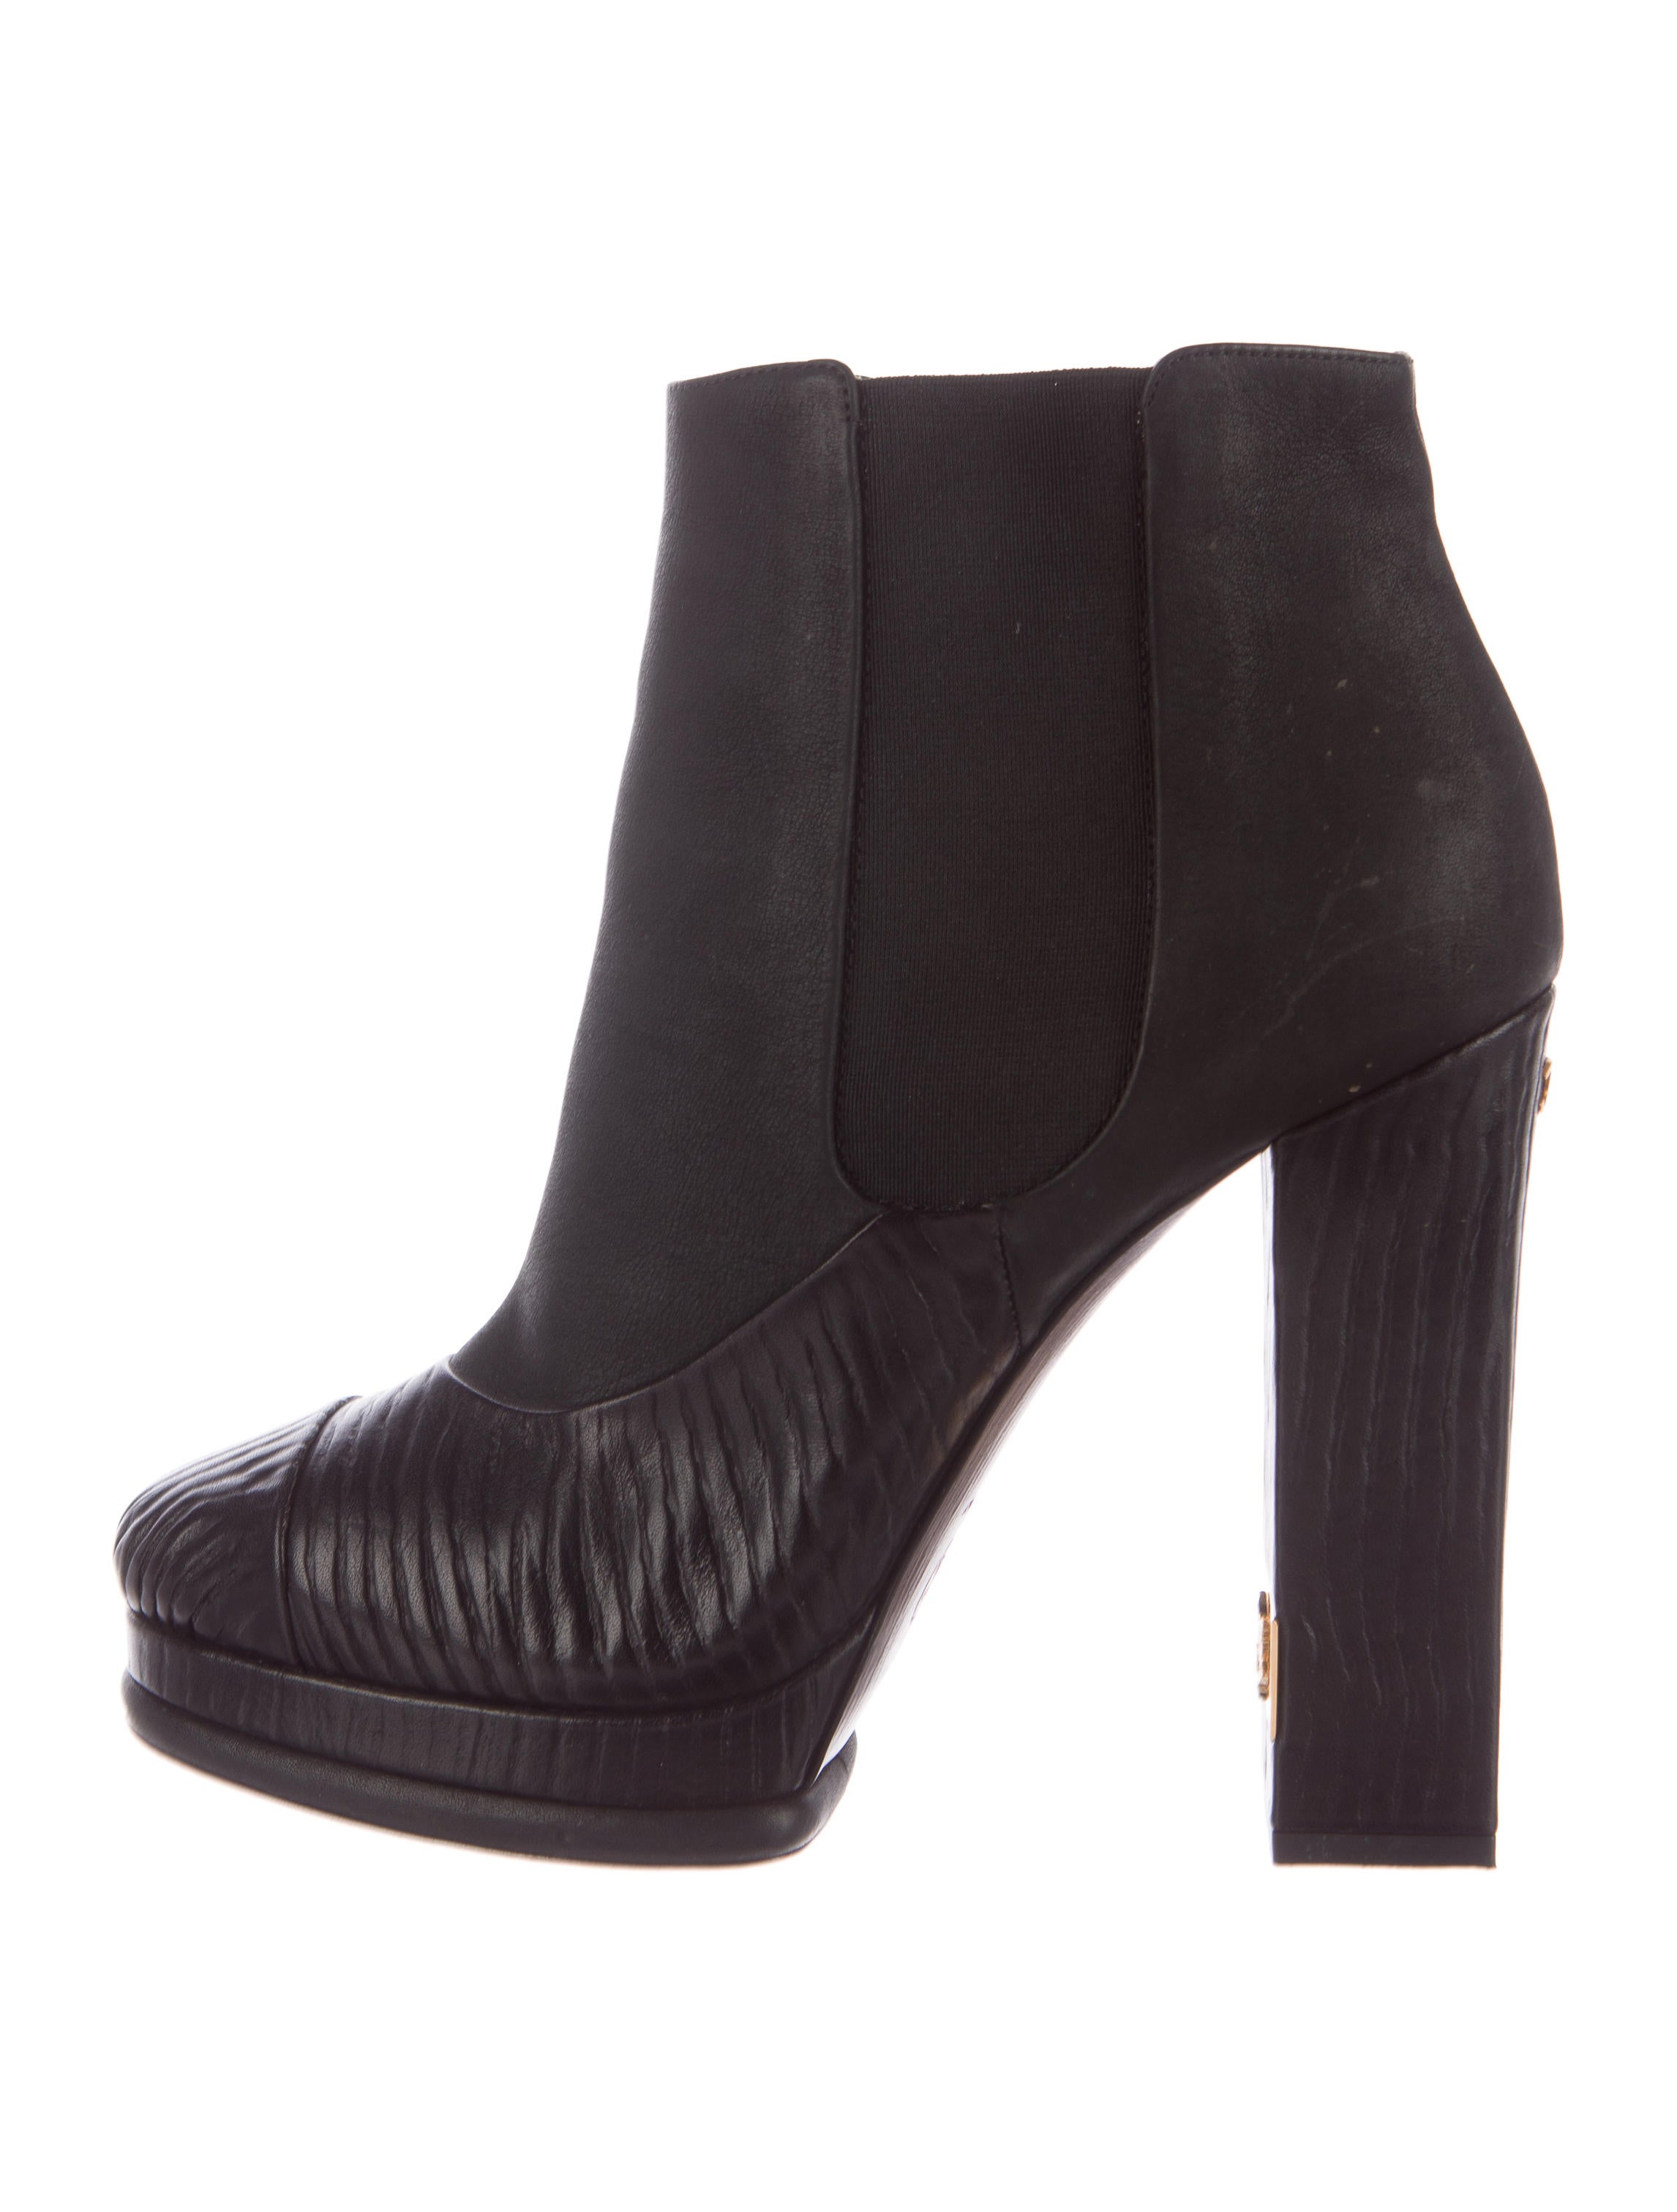 chanel embossed platform ankle boots shoes cha185723